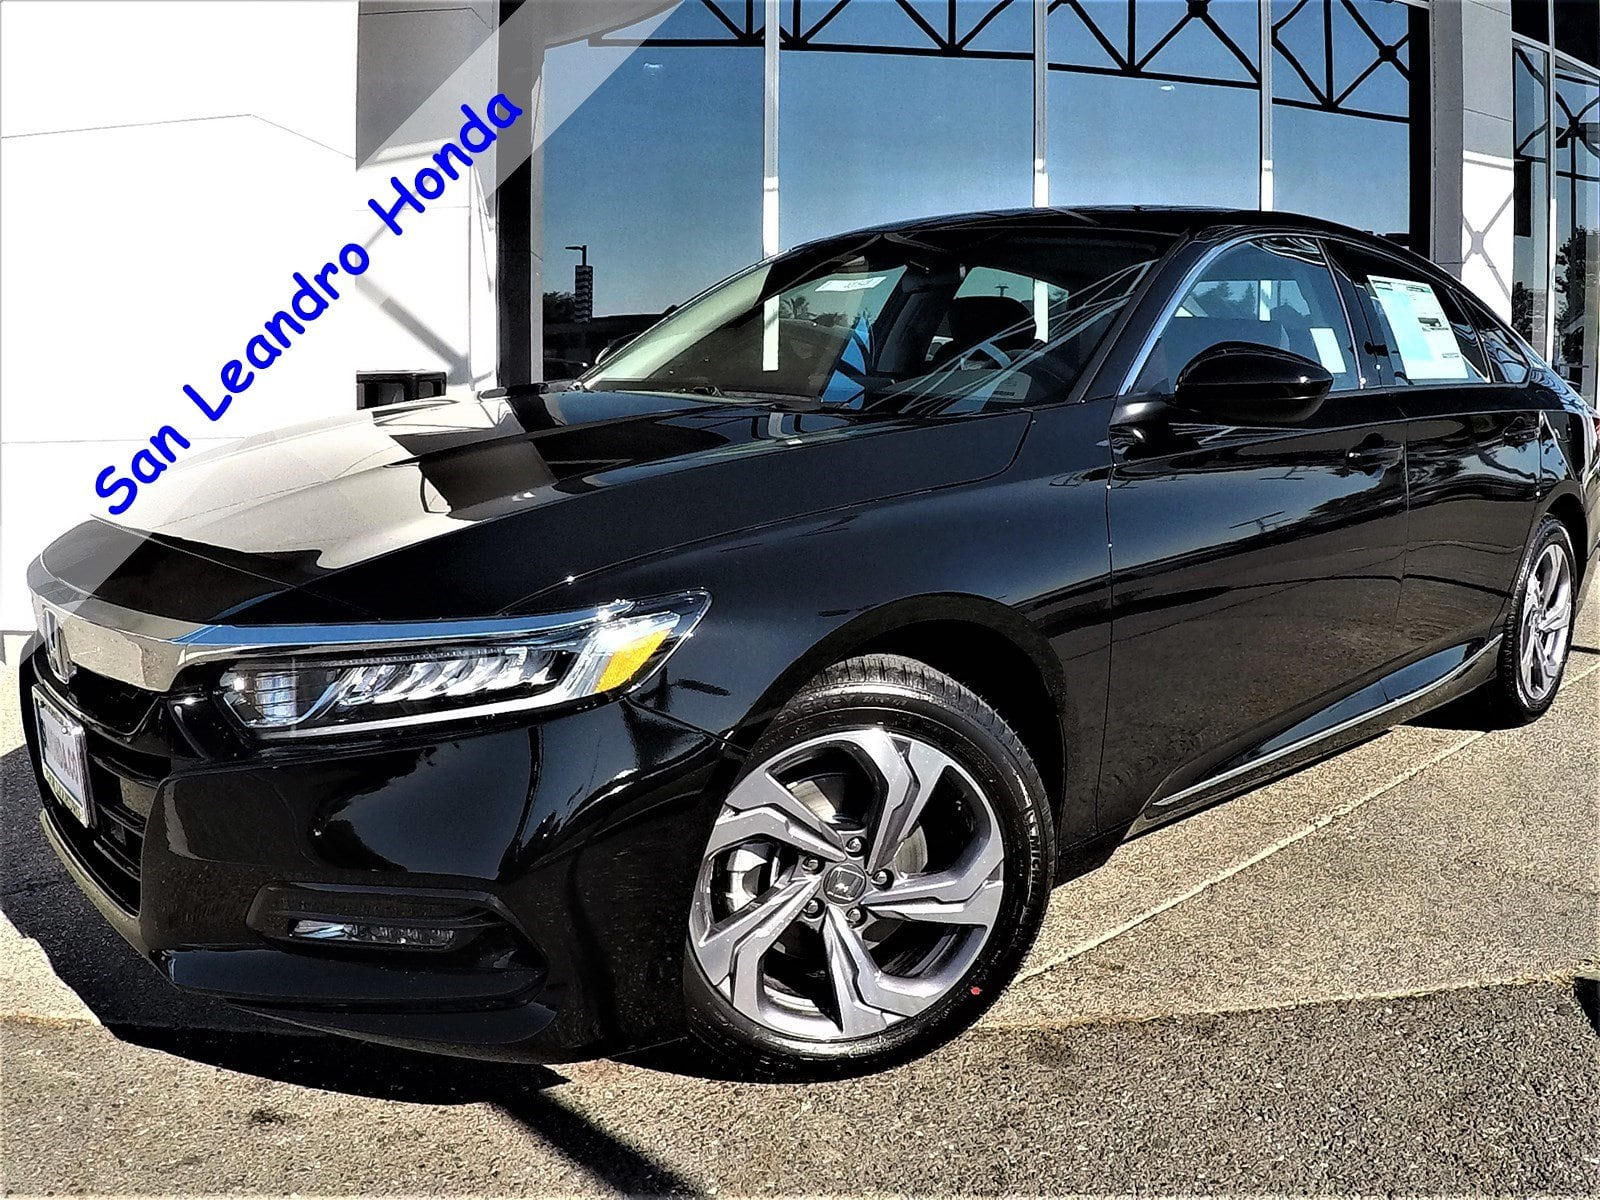 cars for sale around my area new honda dealer sales service and parts in bay area oakland. Black Bedroom Furniture Sets. Home Design Ideas